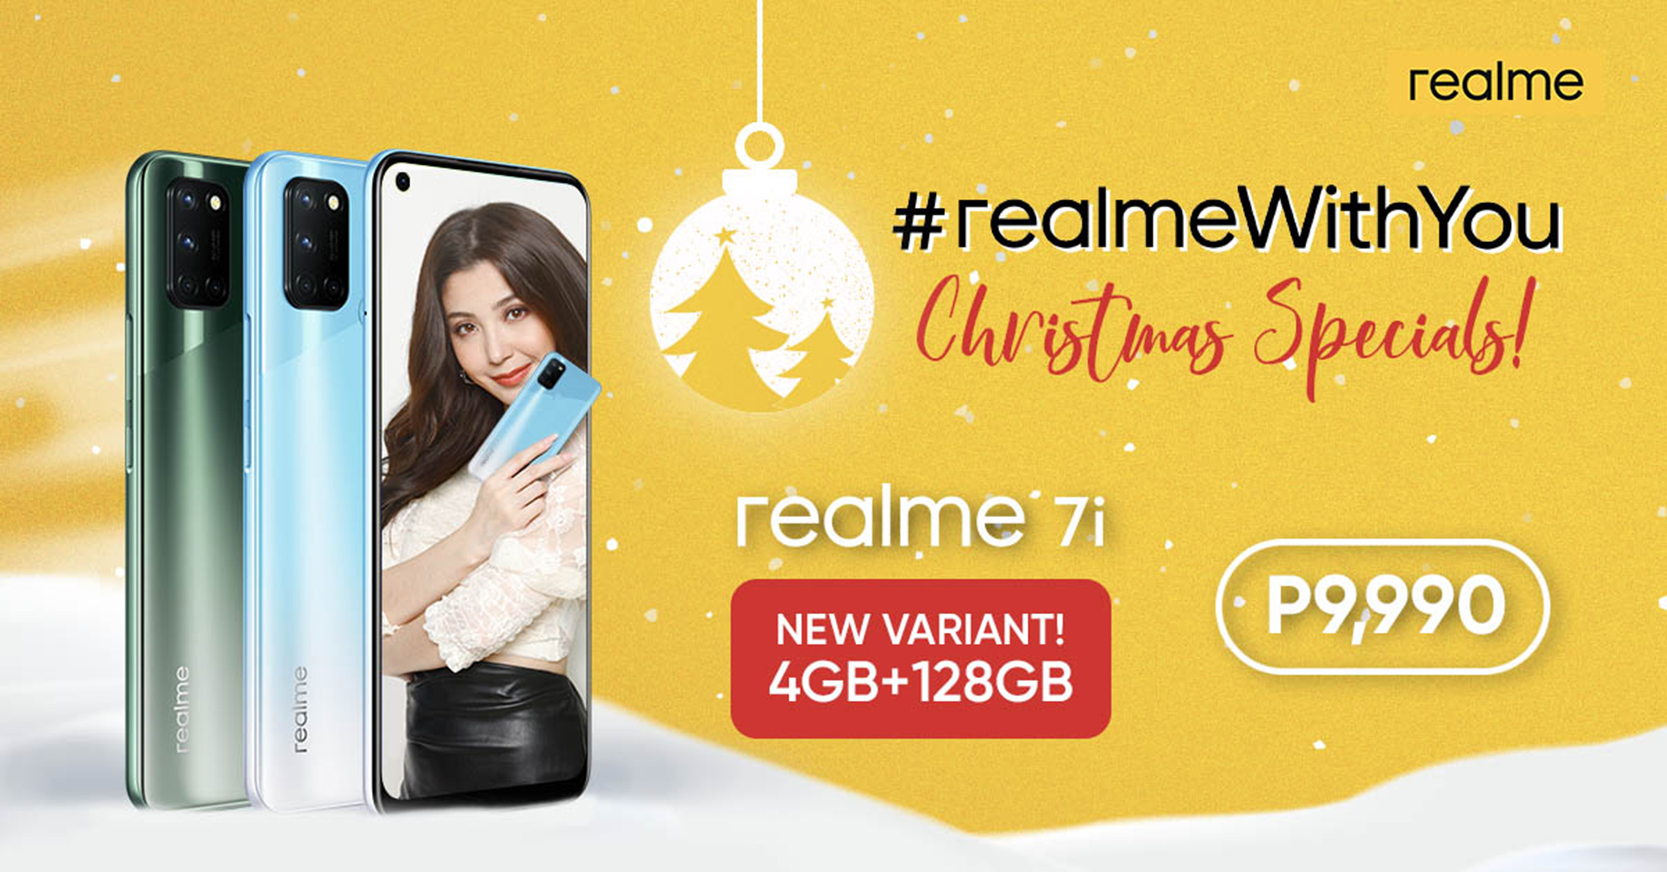 realme-7i-with-4gb-128gb-now-available-for-purchase-for-p9990